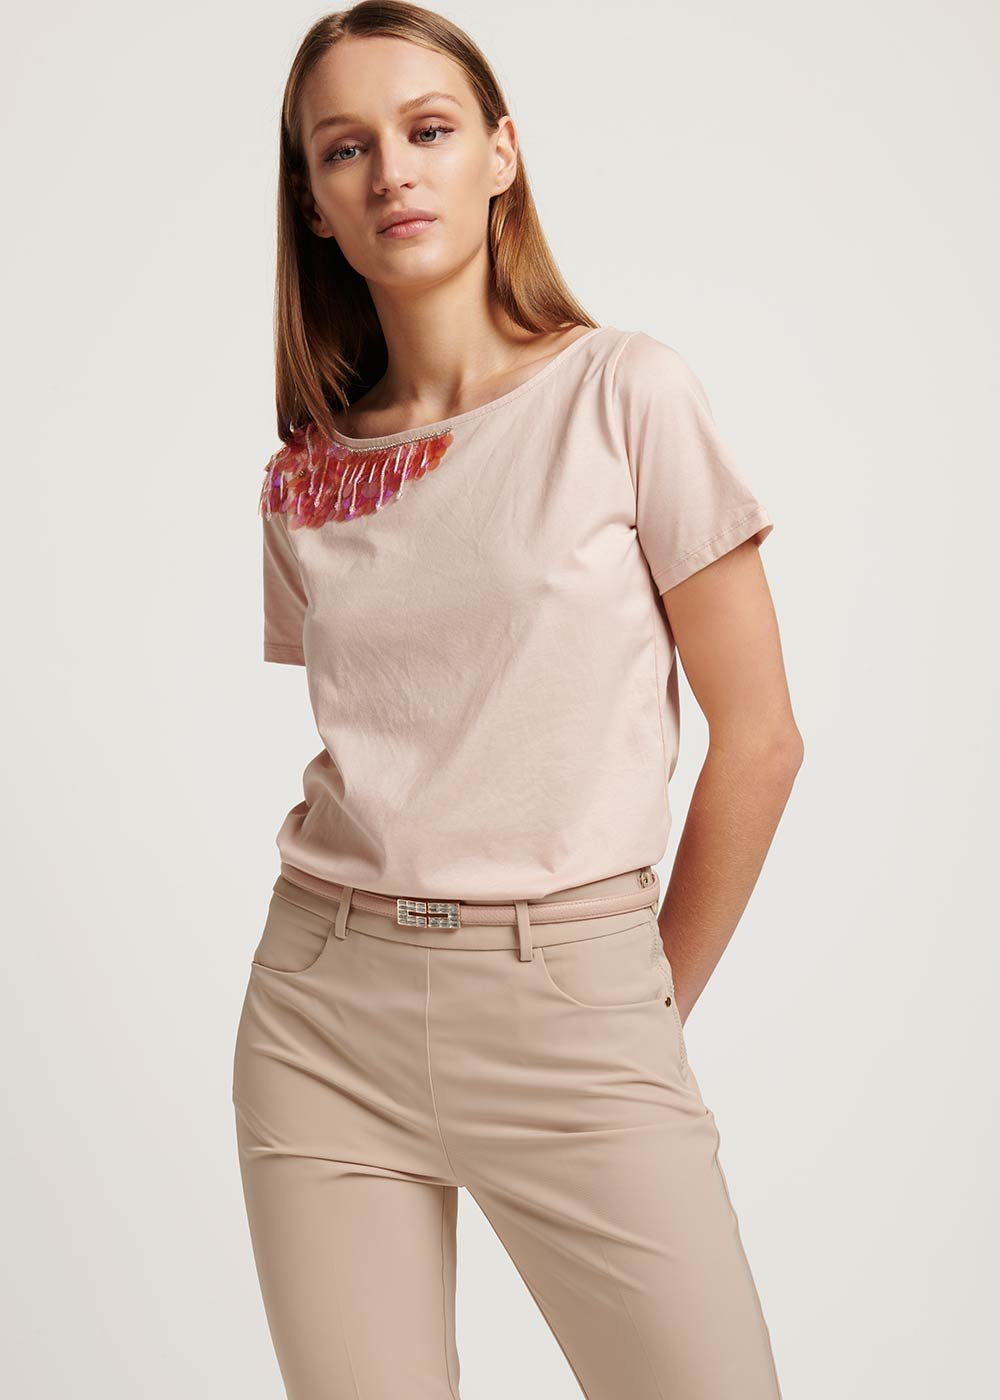 Samira T-shirt with sequin and crystal details - Pink - Woman